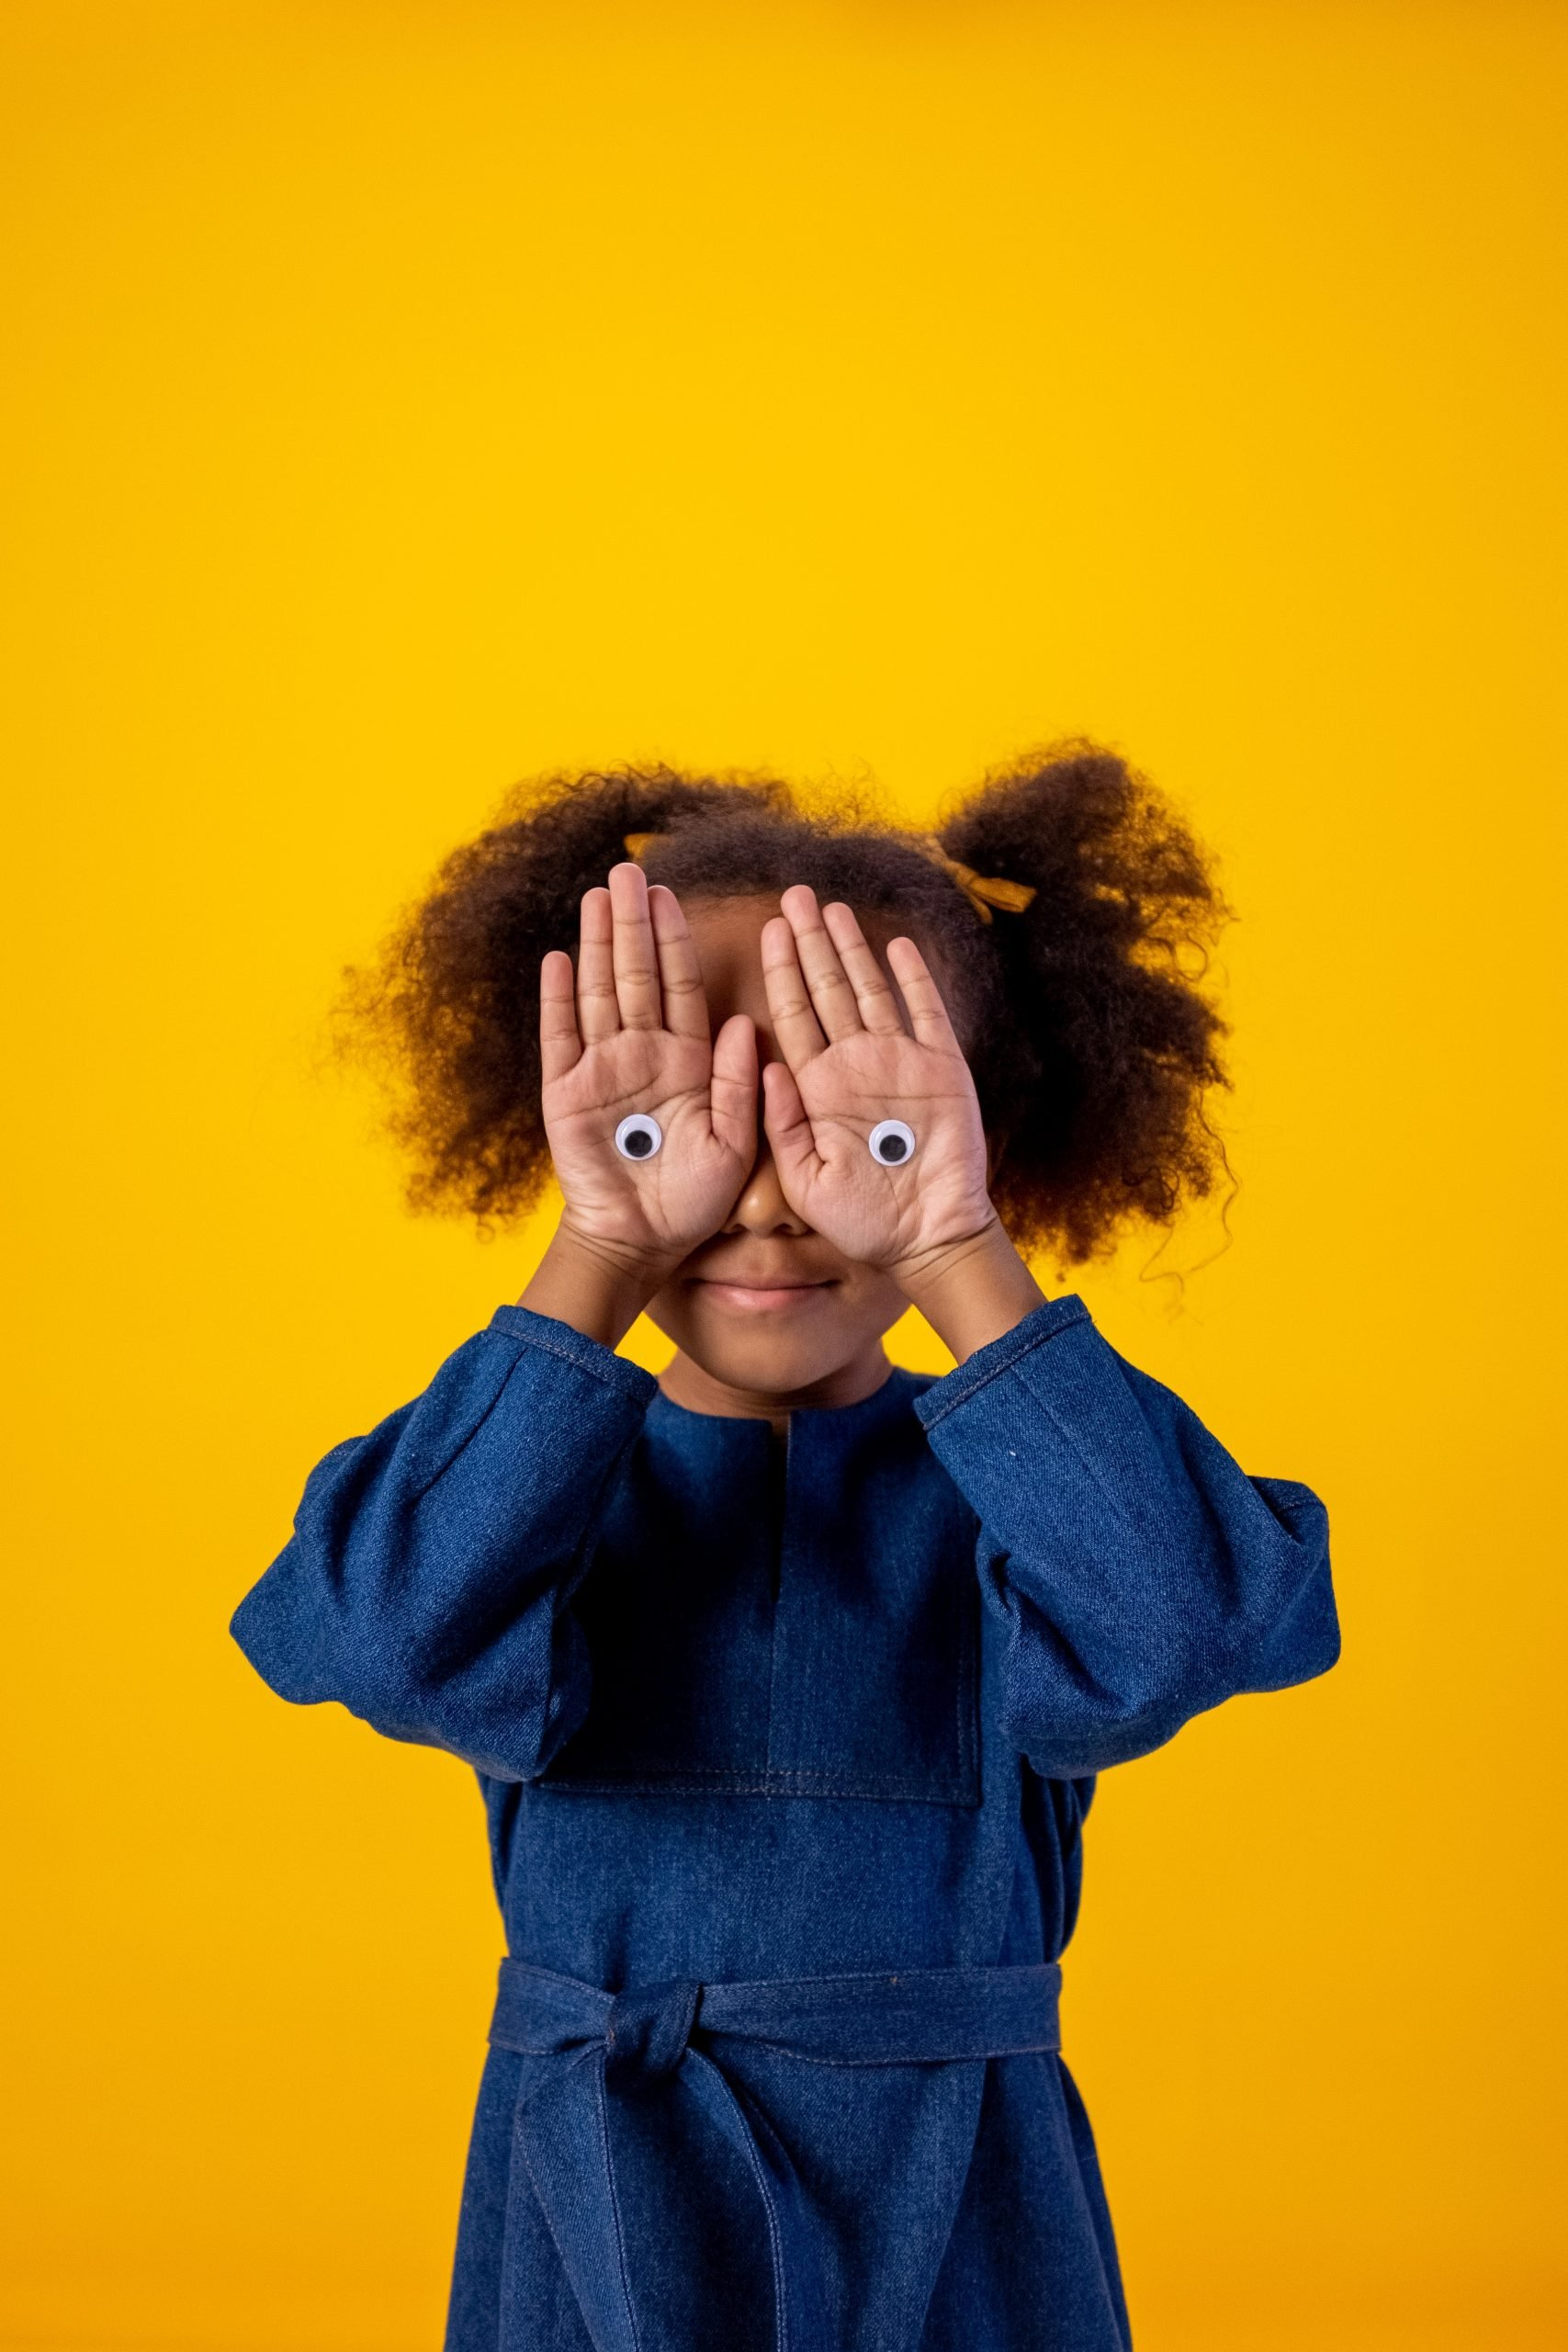 a child in a blue dress with natural hair in pigtails covers her eyes with her hands, palms out, with googly eyes stuck to her palms.